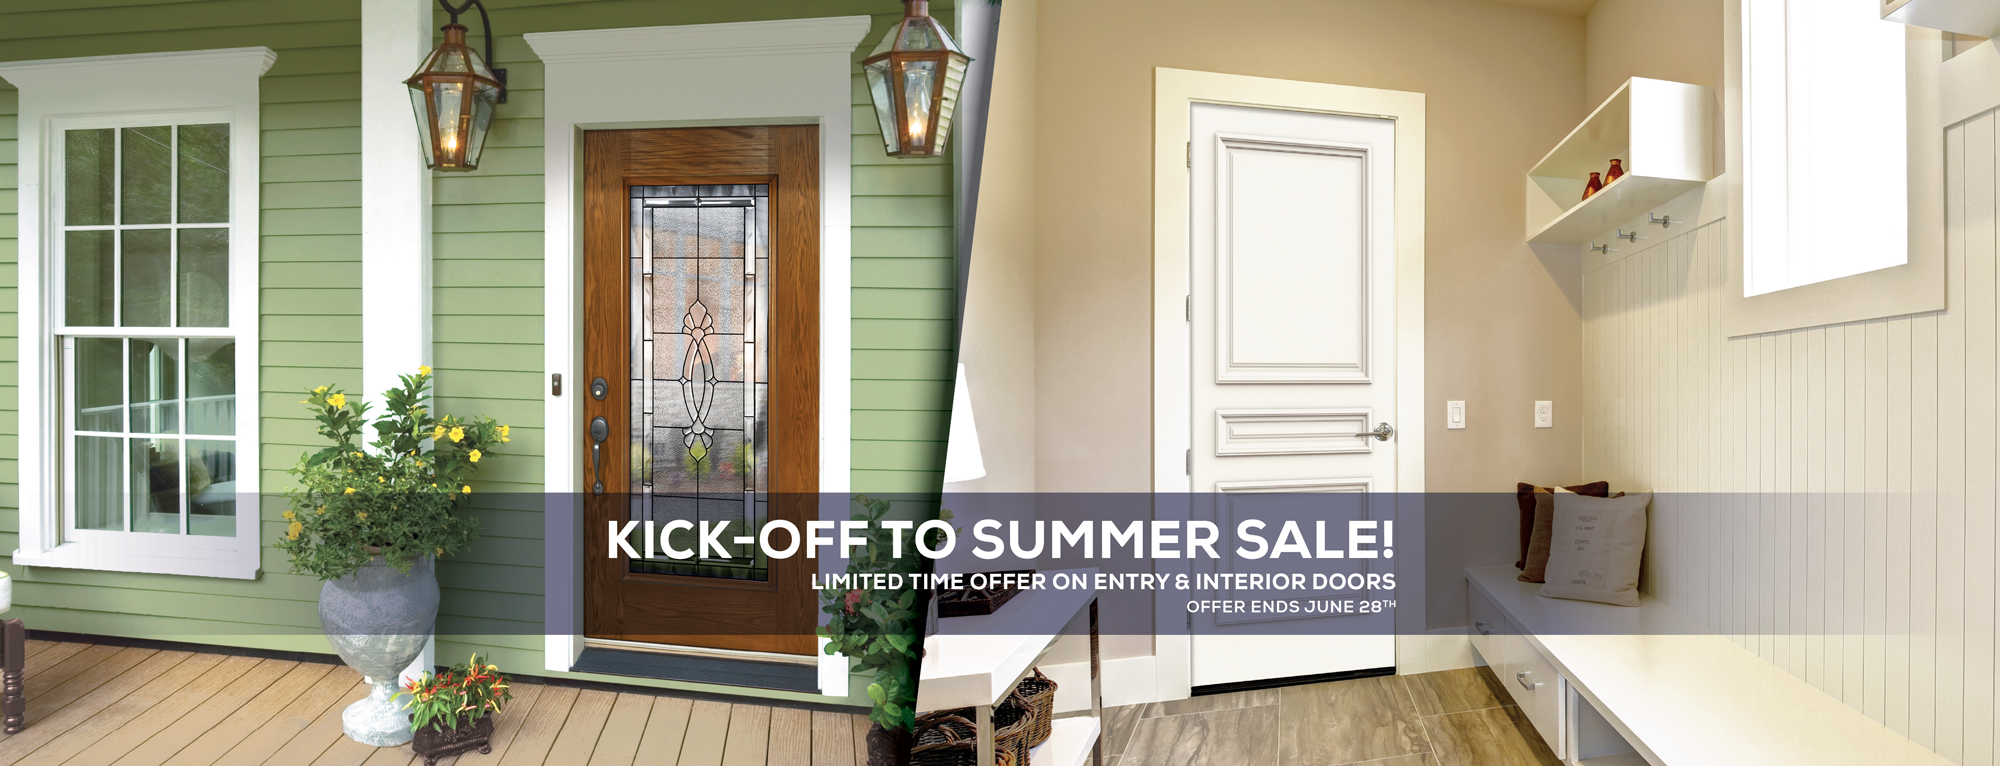 Kick-Off to Summer Sale!